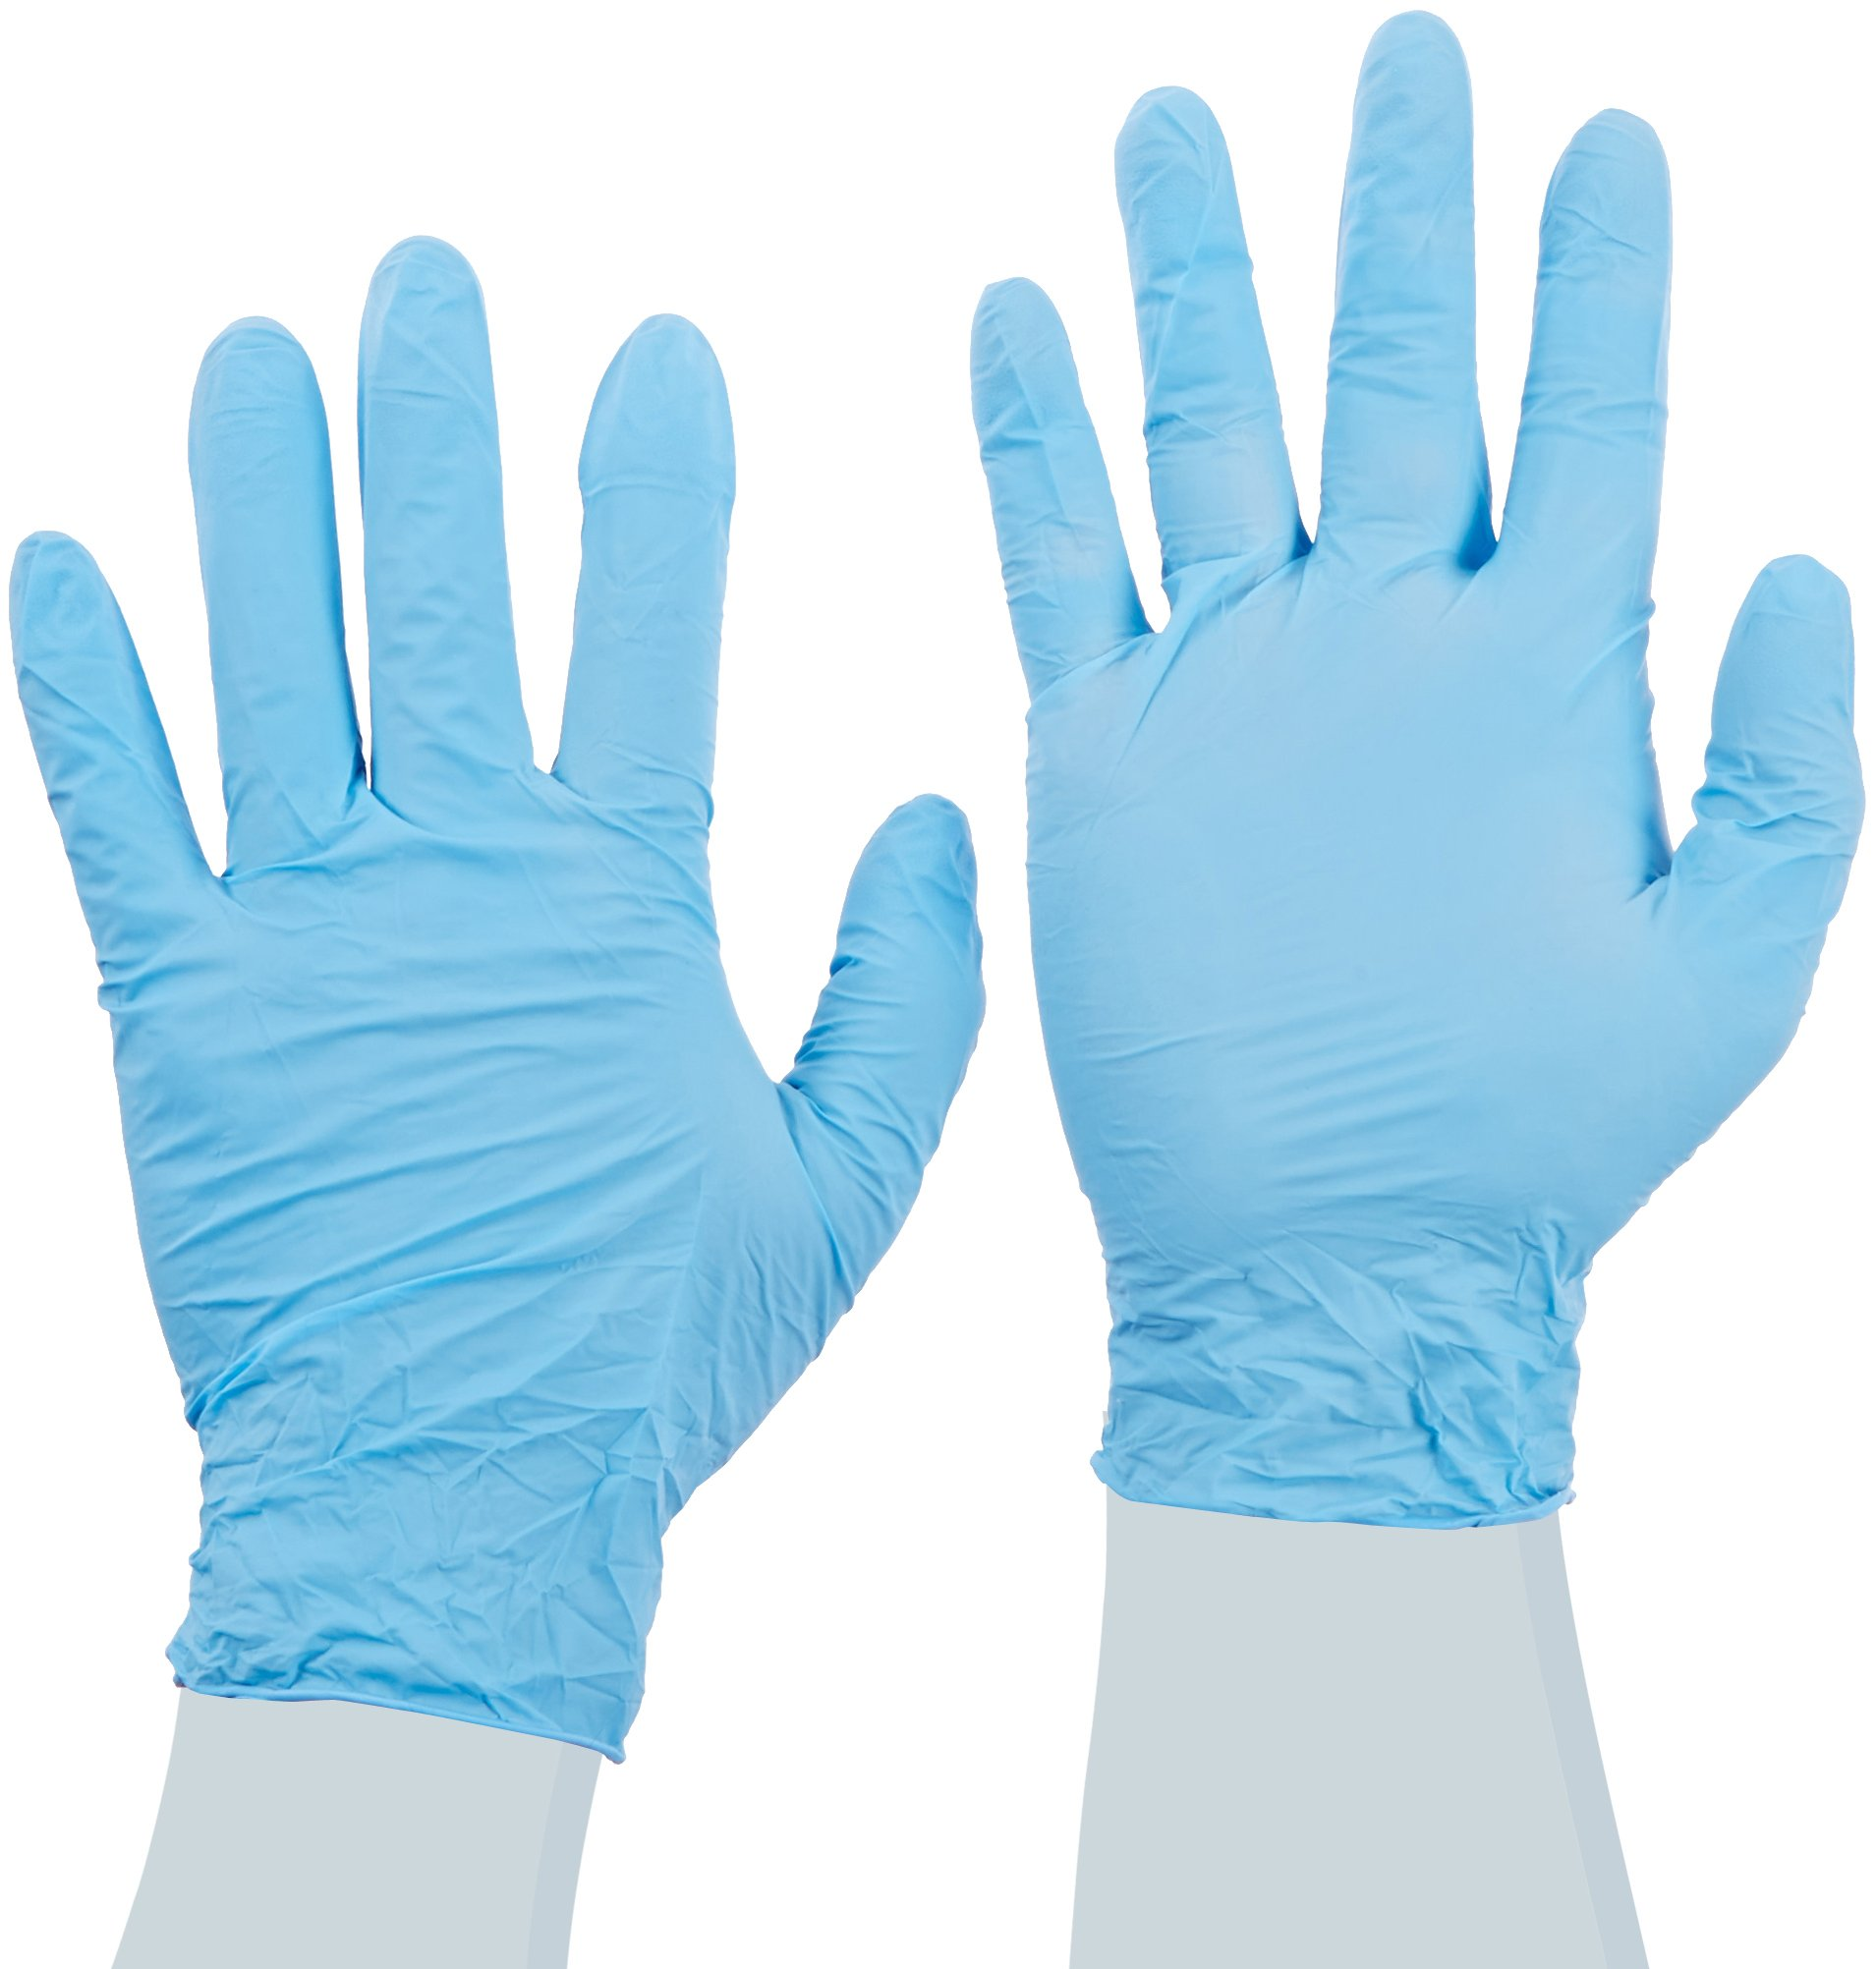 Cardinal Health Esteem 8816NB Nitrile Stretchy Powder Free Examination Gloves, Blue, Size Large (Case of 1500) by Cardinal Health